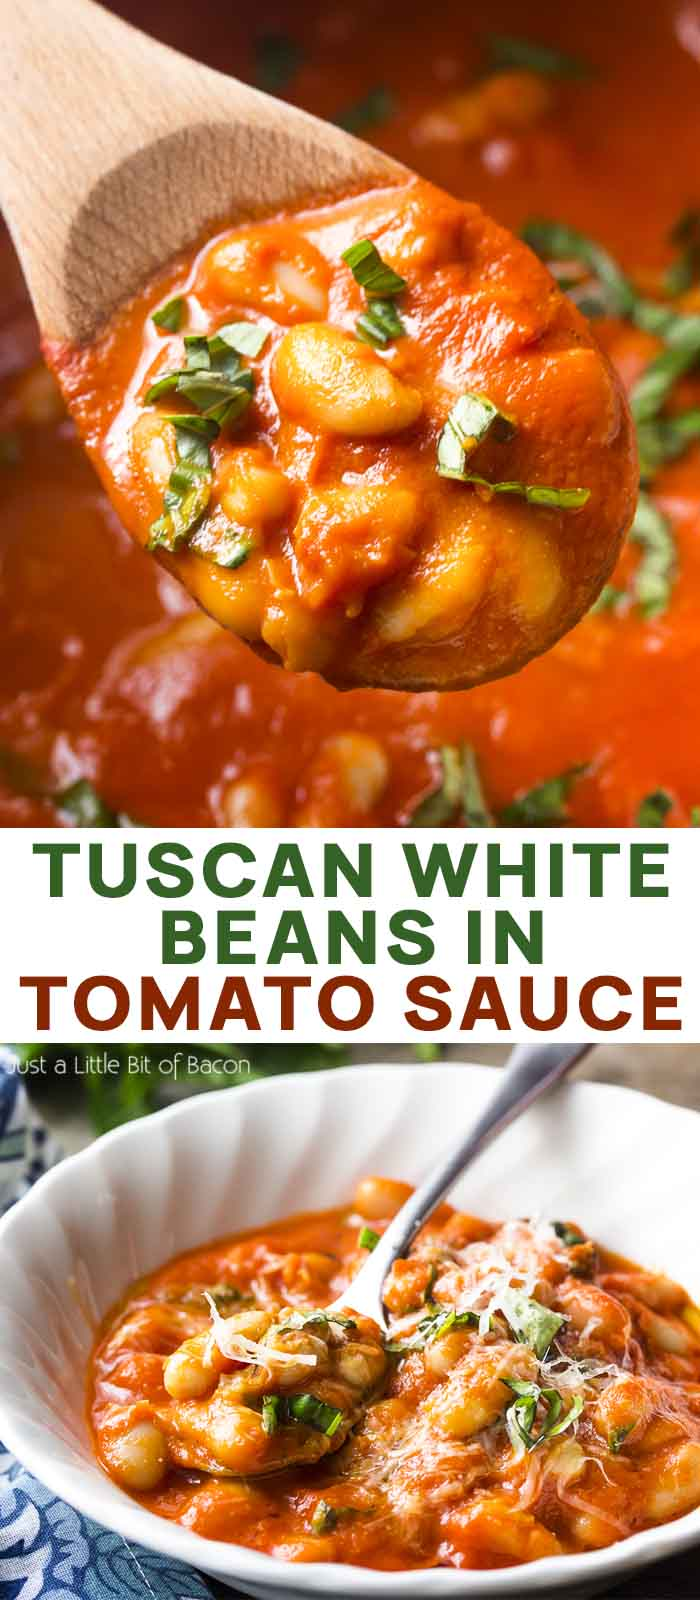 A spoon of beans and beans in a bowl with text overlay - Tuscan White Beans in Tomato Sauce.